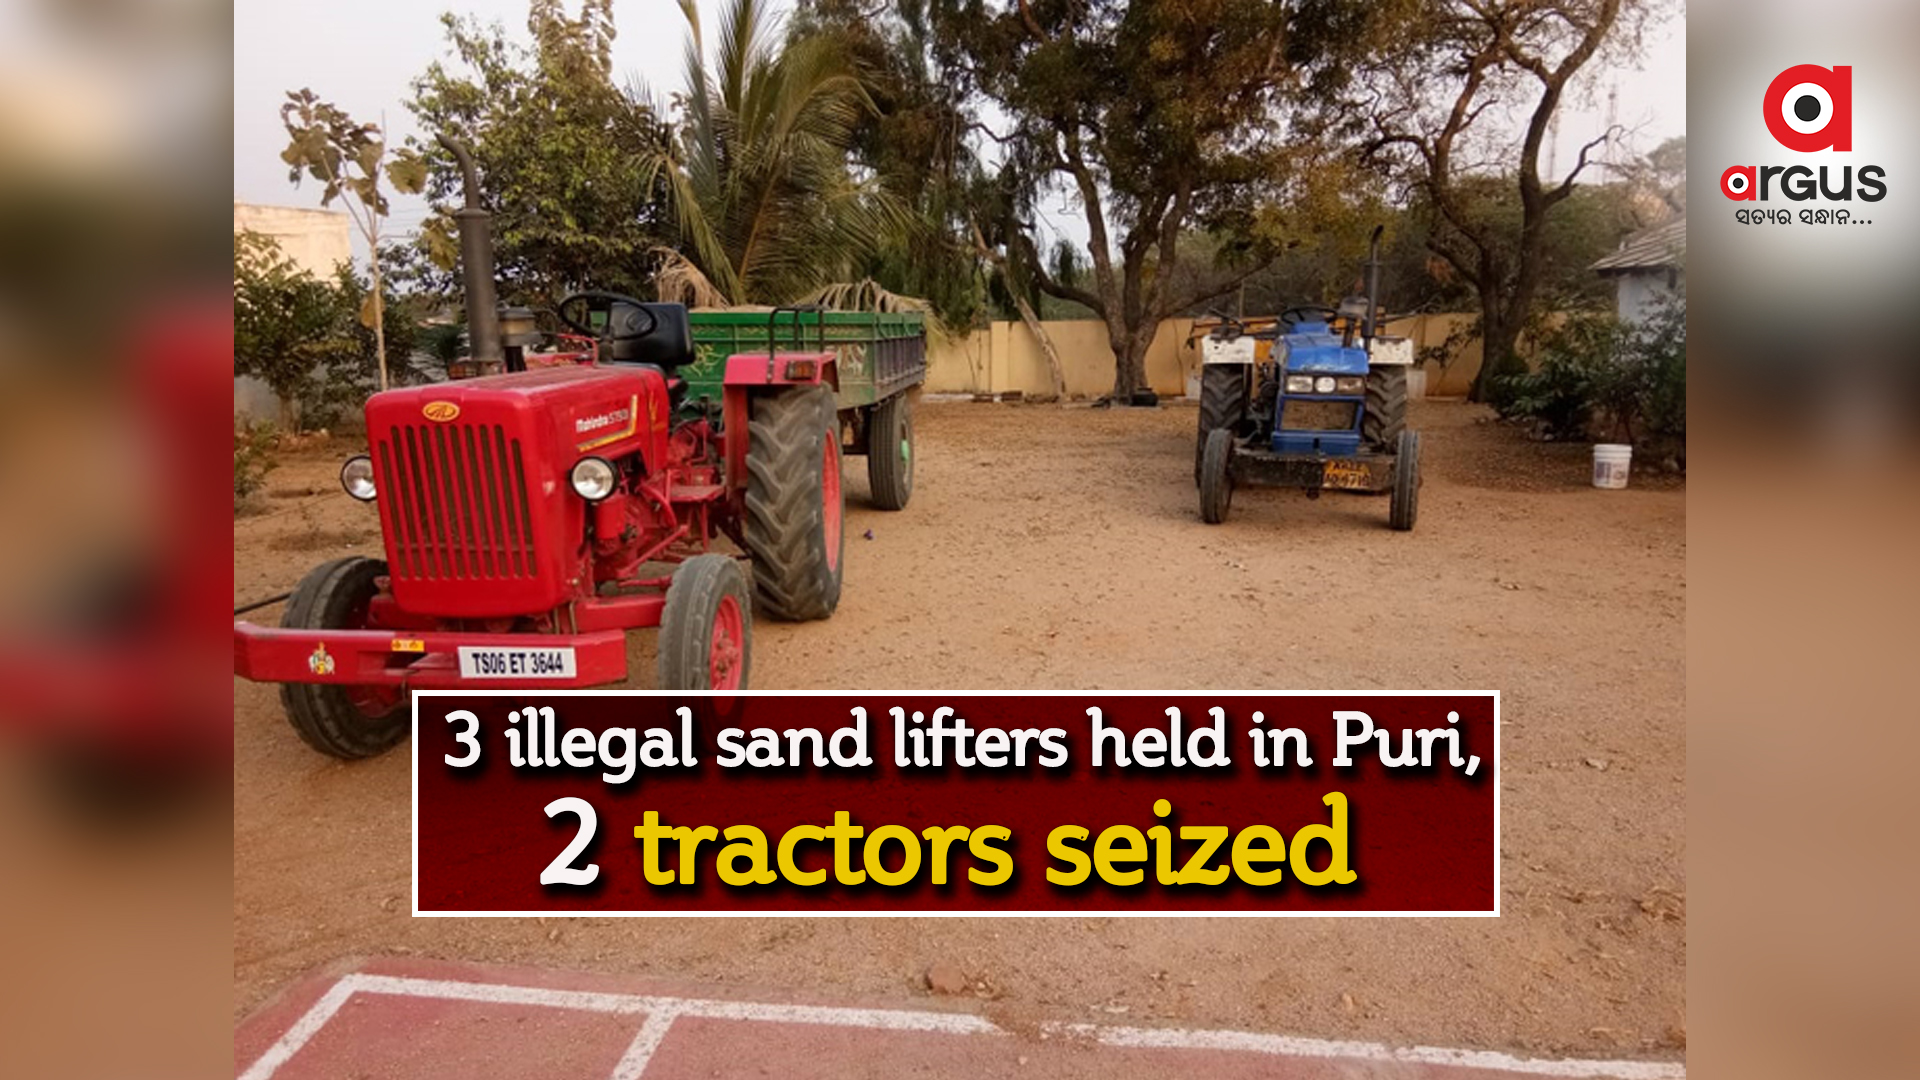 3 illegal sand lifters held in Puri, 2 tractors seized